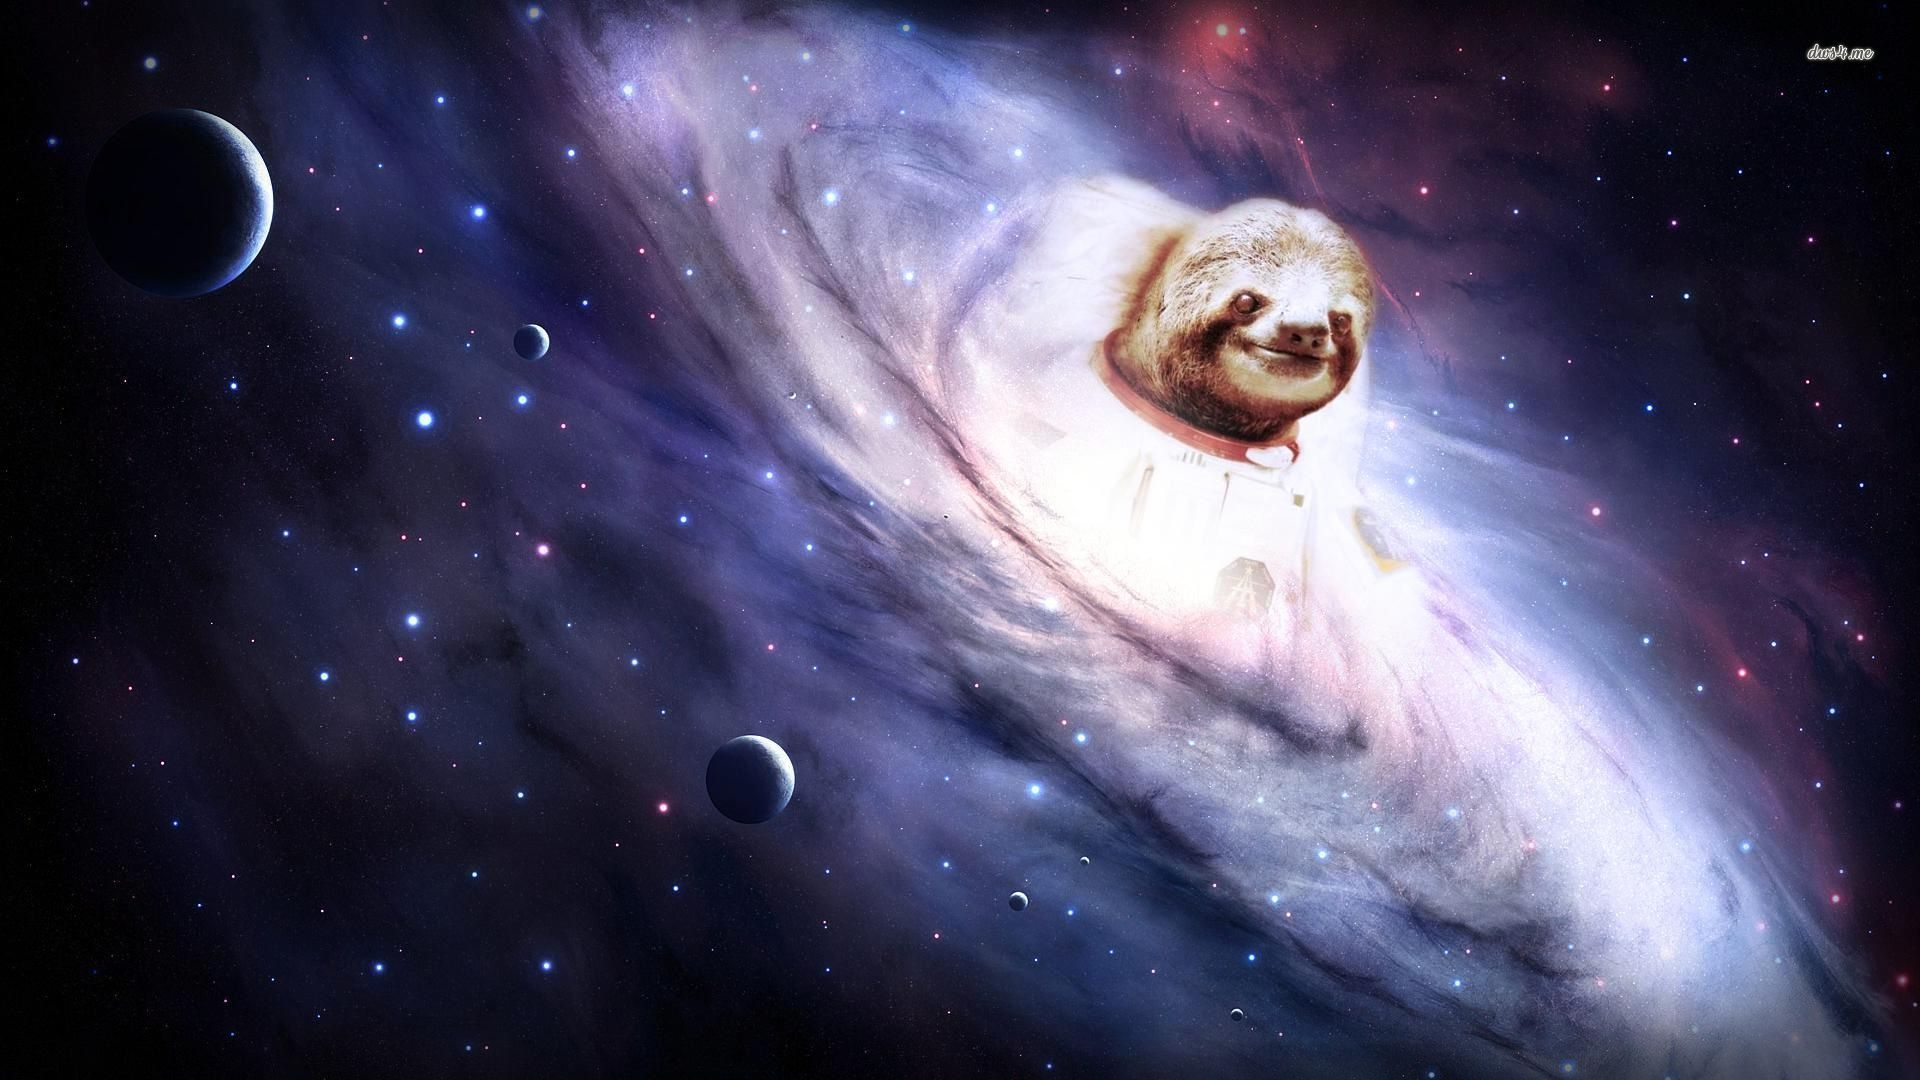 Sloth emerging from the galaxt wallpaper Digital Art wallpapers 1920x1080